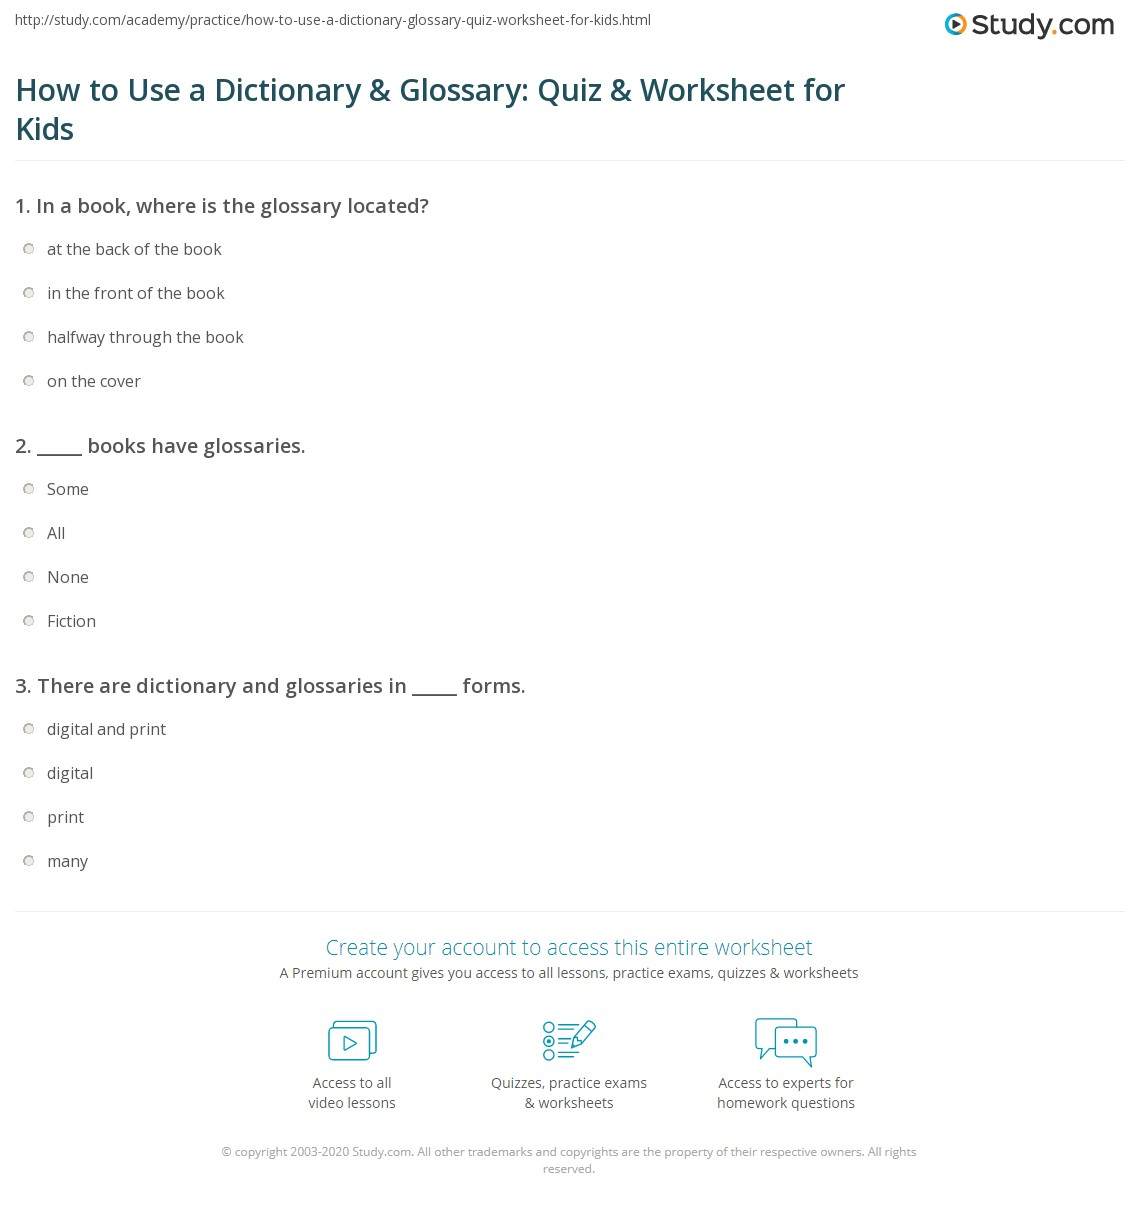 Worksheets Dictionary Worksheets how to use a dictionary glossary quiz worksheet for kids print using dictionaries glossaries lesson worksheet